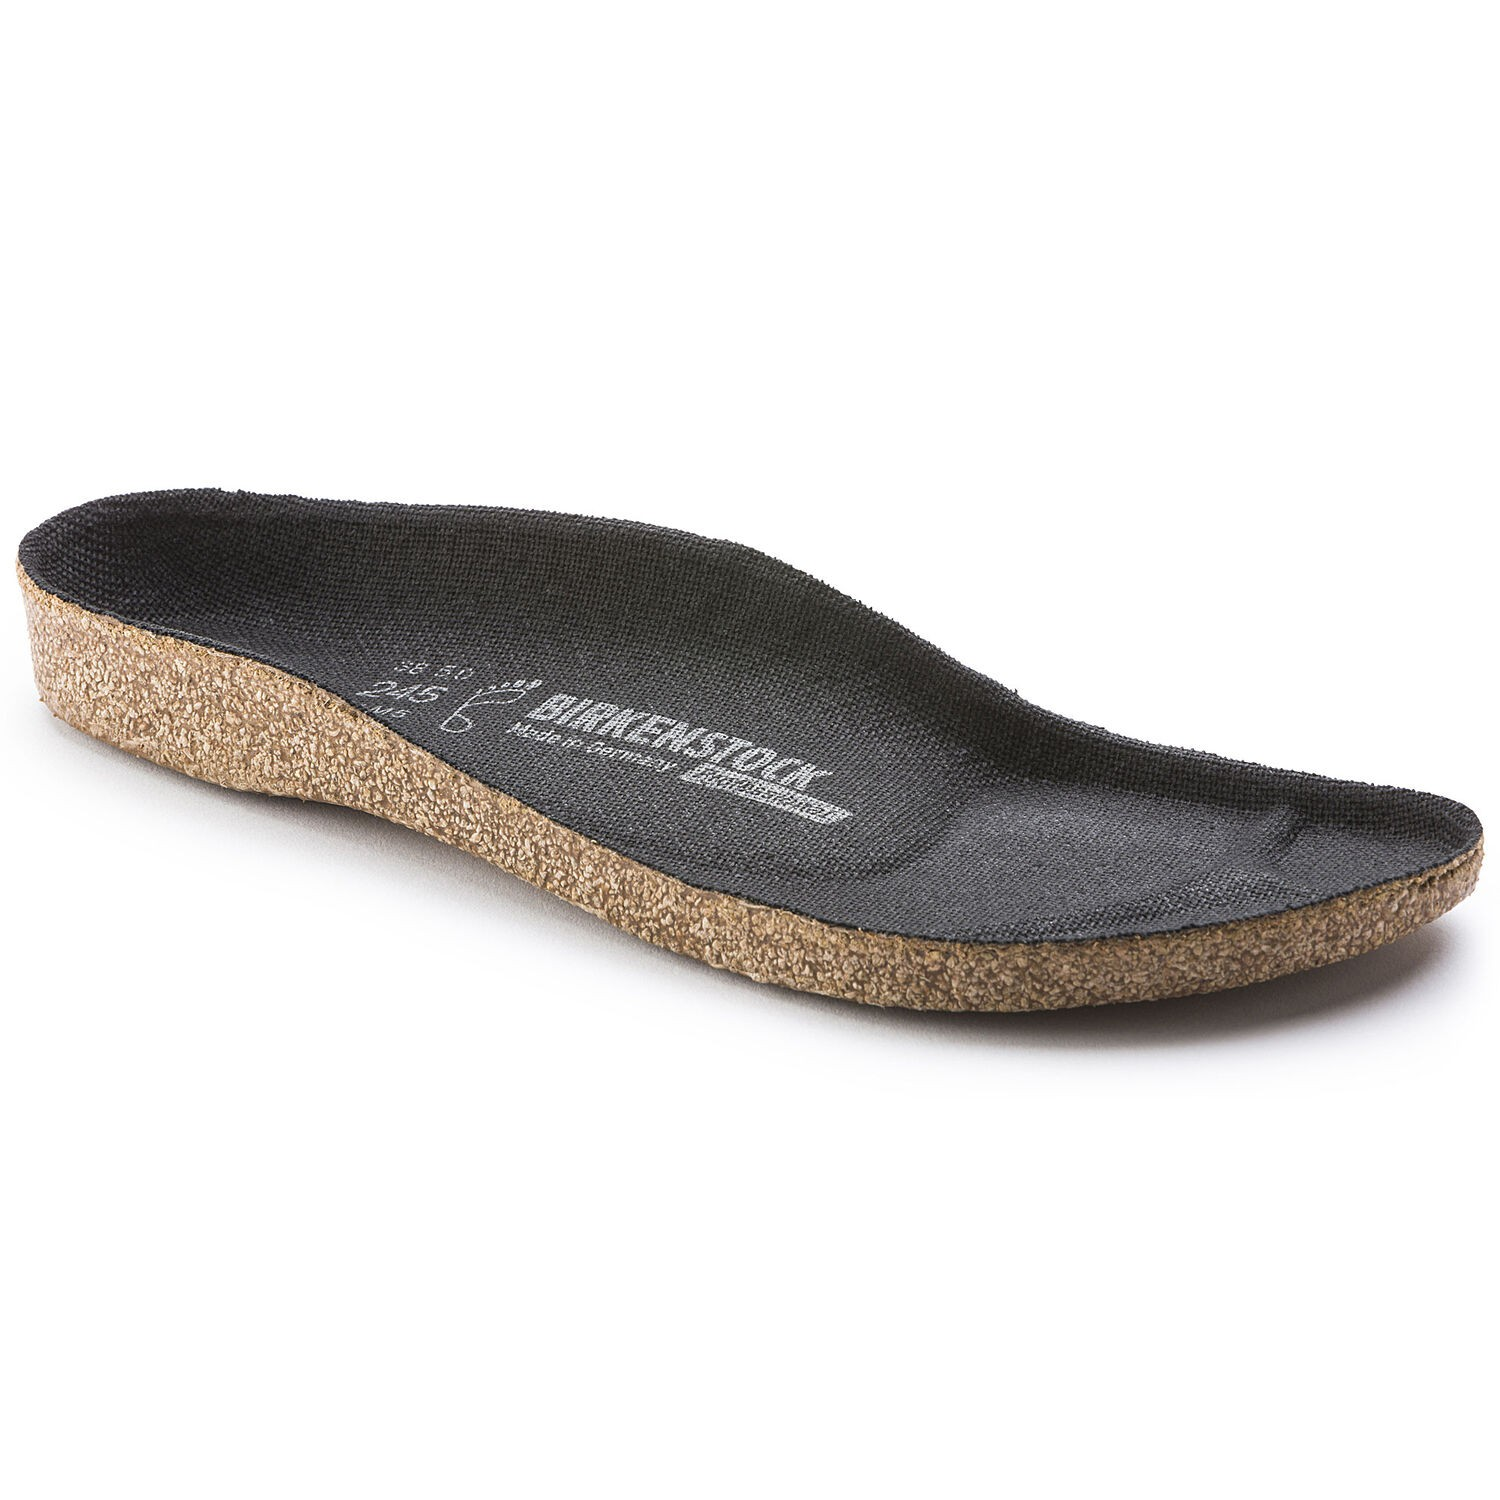 Birkenstock Replacement Footbed for Super Birki - Palmilha Reposição